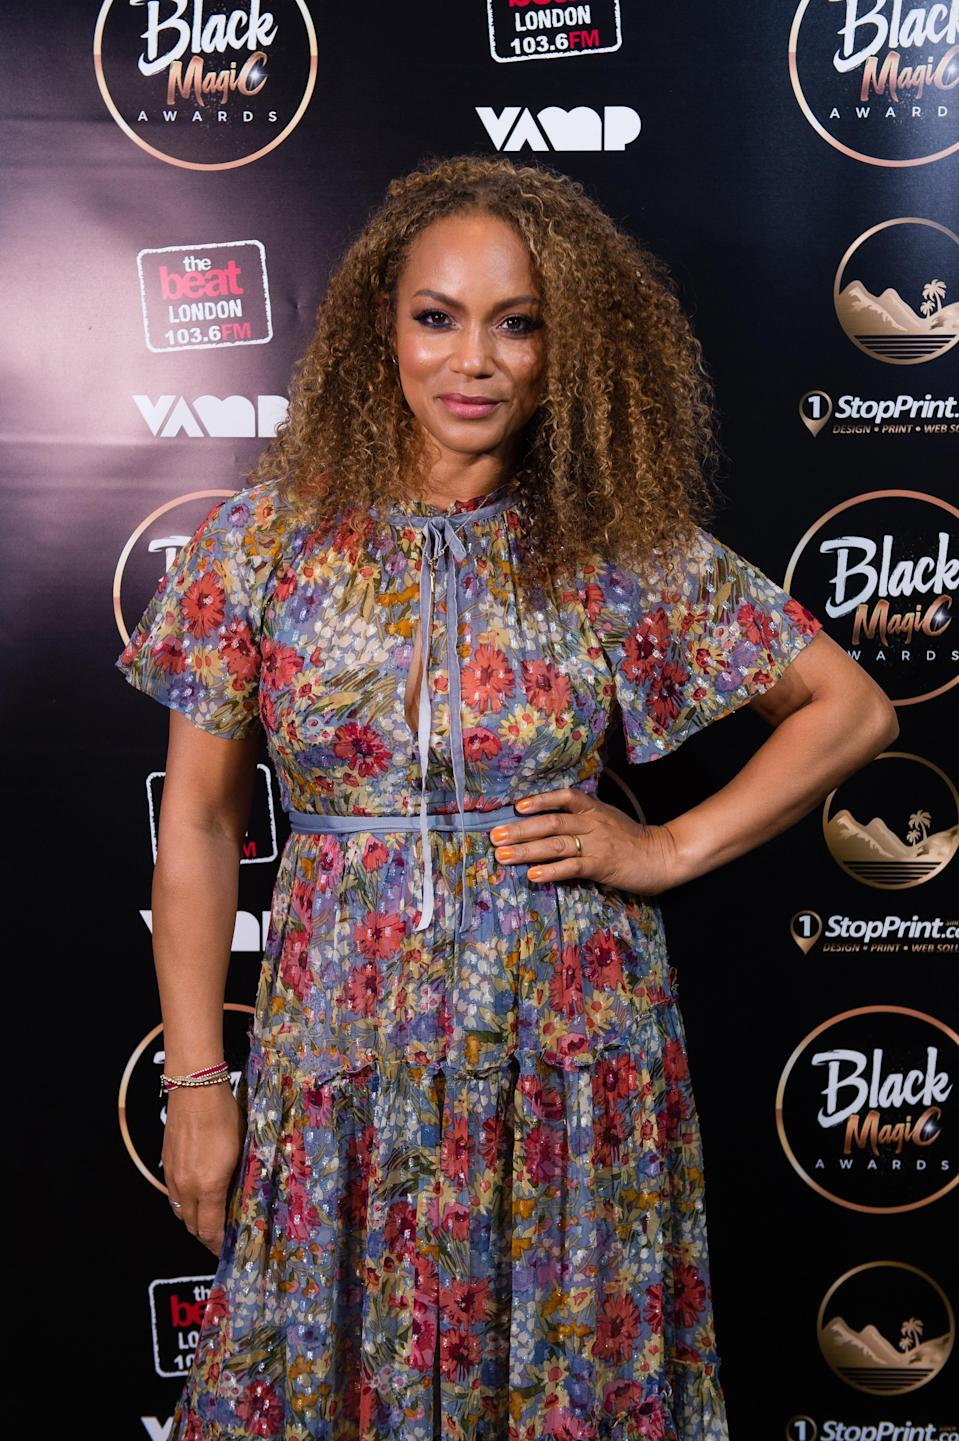 Actress and TV personality Angela Griffin (above) says she determined not to let her daughters inherit her body insecurities.